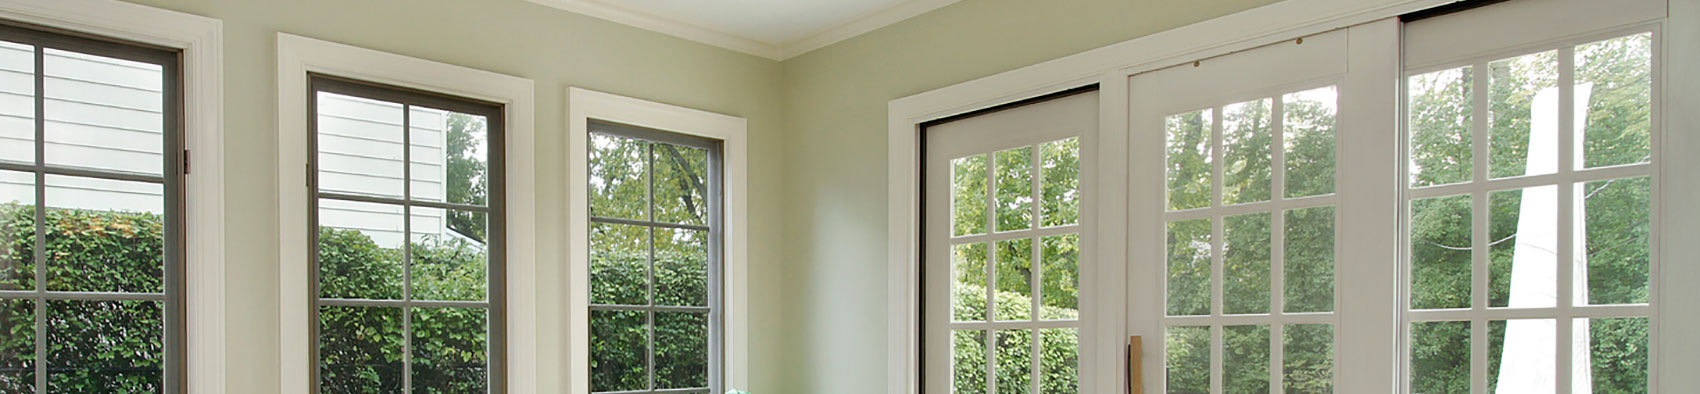 Windows And Patio Doors Jackson Insulation Exteriors Co